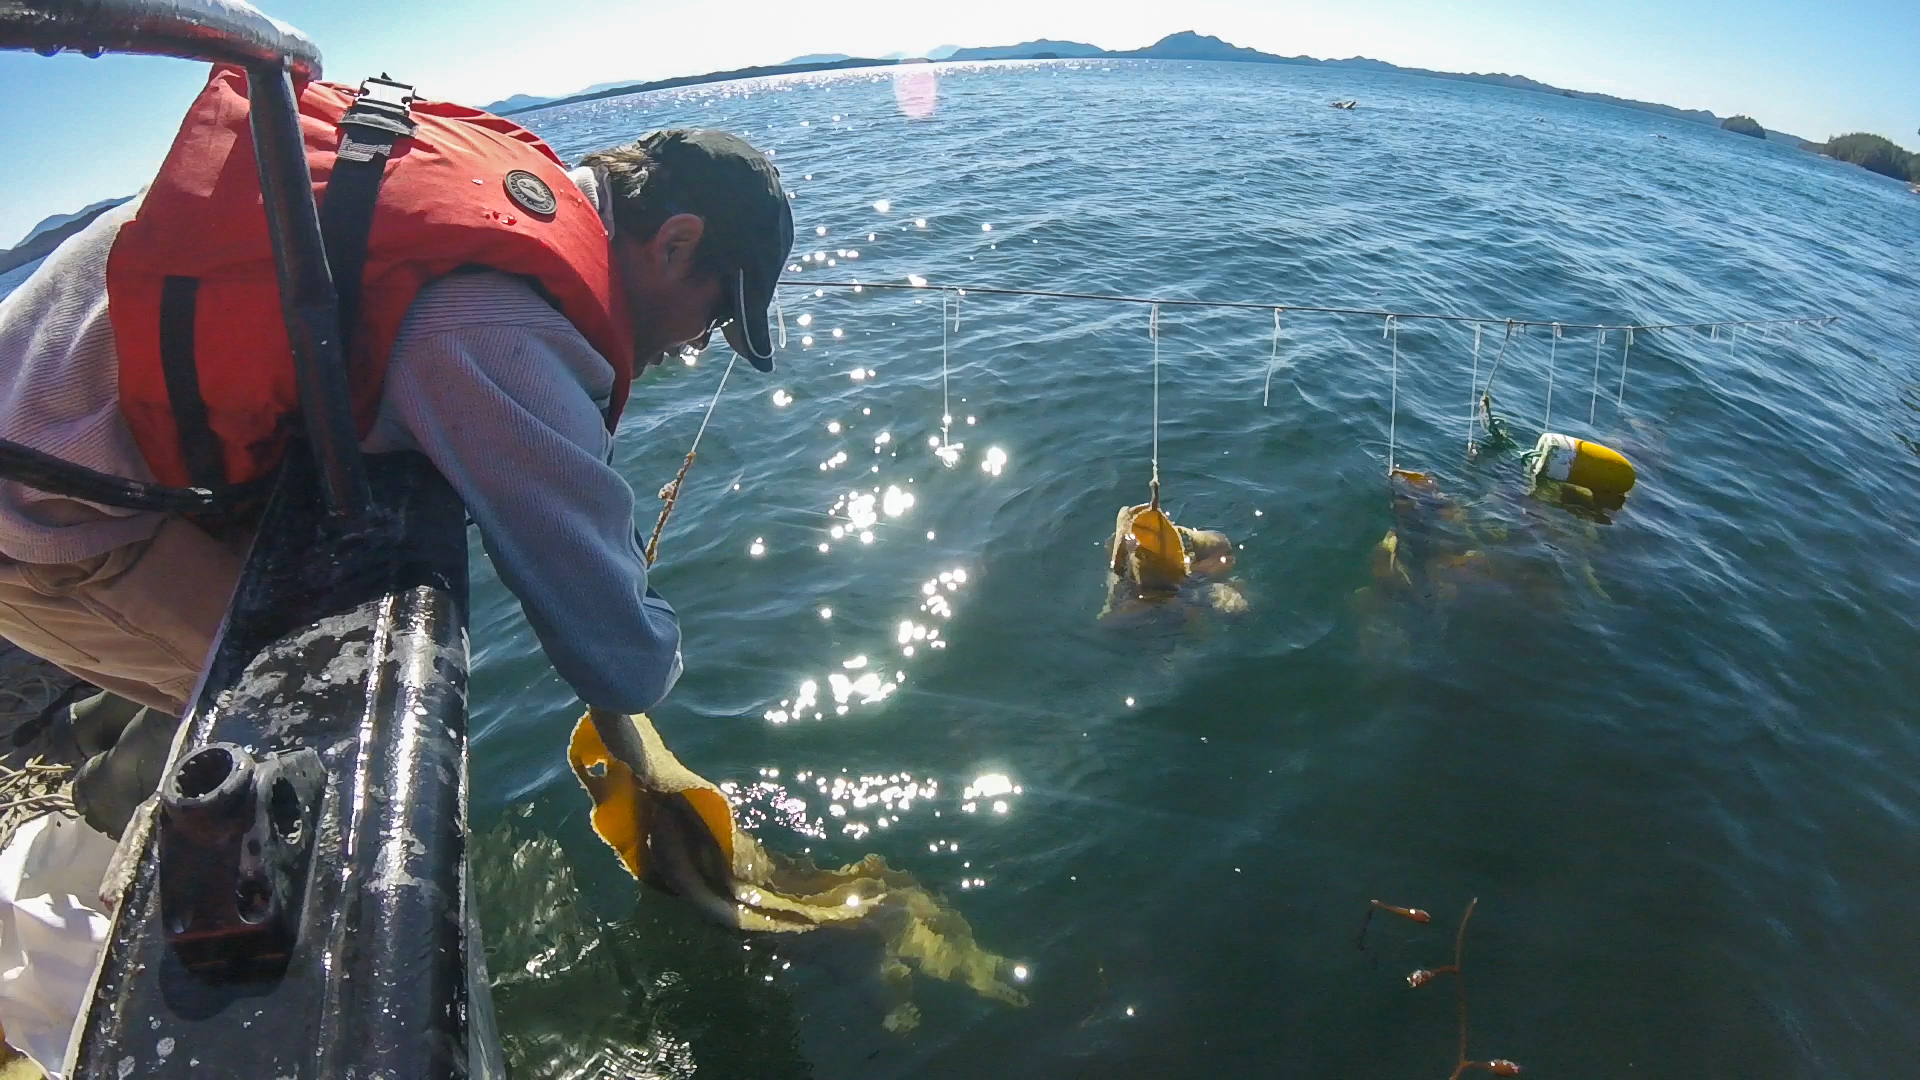 Heiltsuk Guardian collecting Spawn on Kelp off the boat